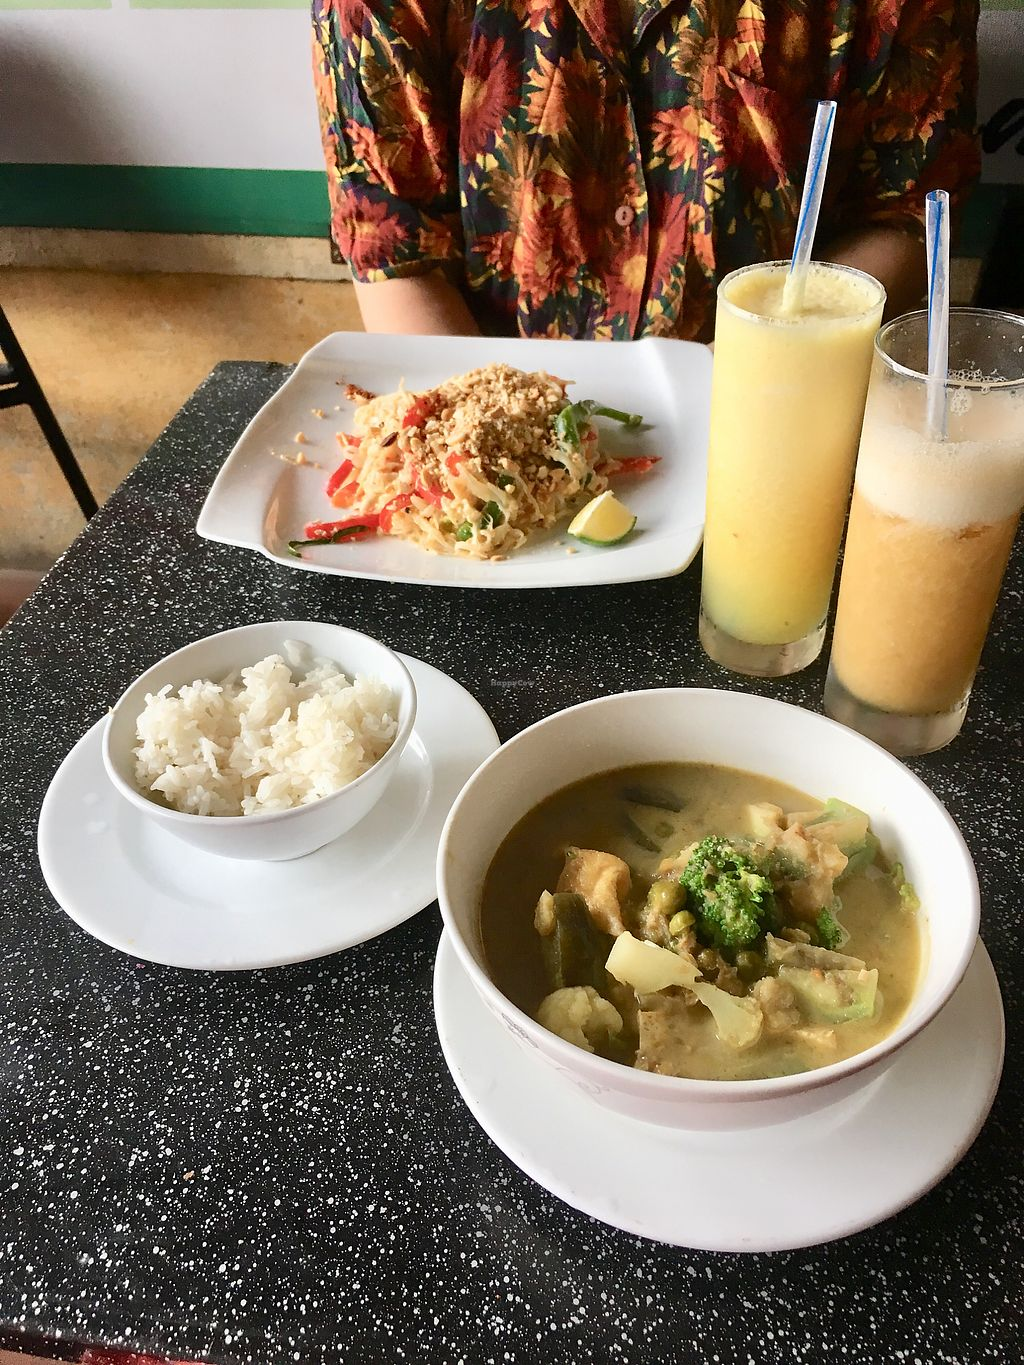 "Photo of Barley Vegetarian  by <a href=""/members/profile/CamilaSilvaL"">CamilaSilvaL</a> <br/>Pad thai and green curry  <br/> January 31, 2018  - <a href='/contact/abuse/image/75979/353254'>Report</a>"